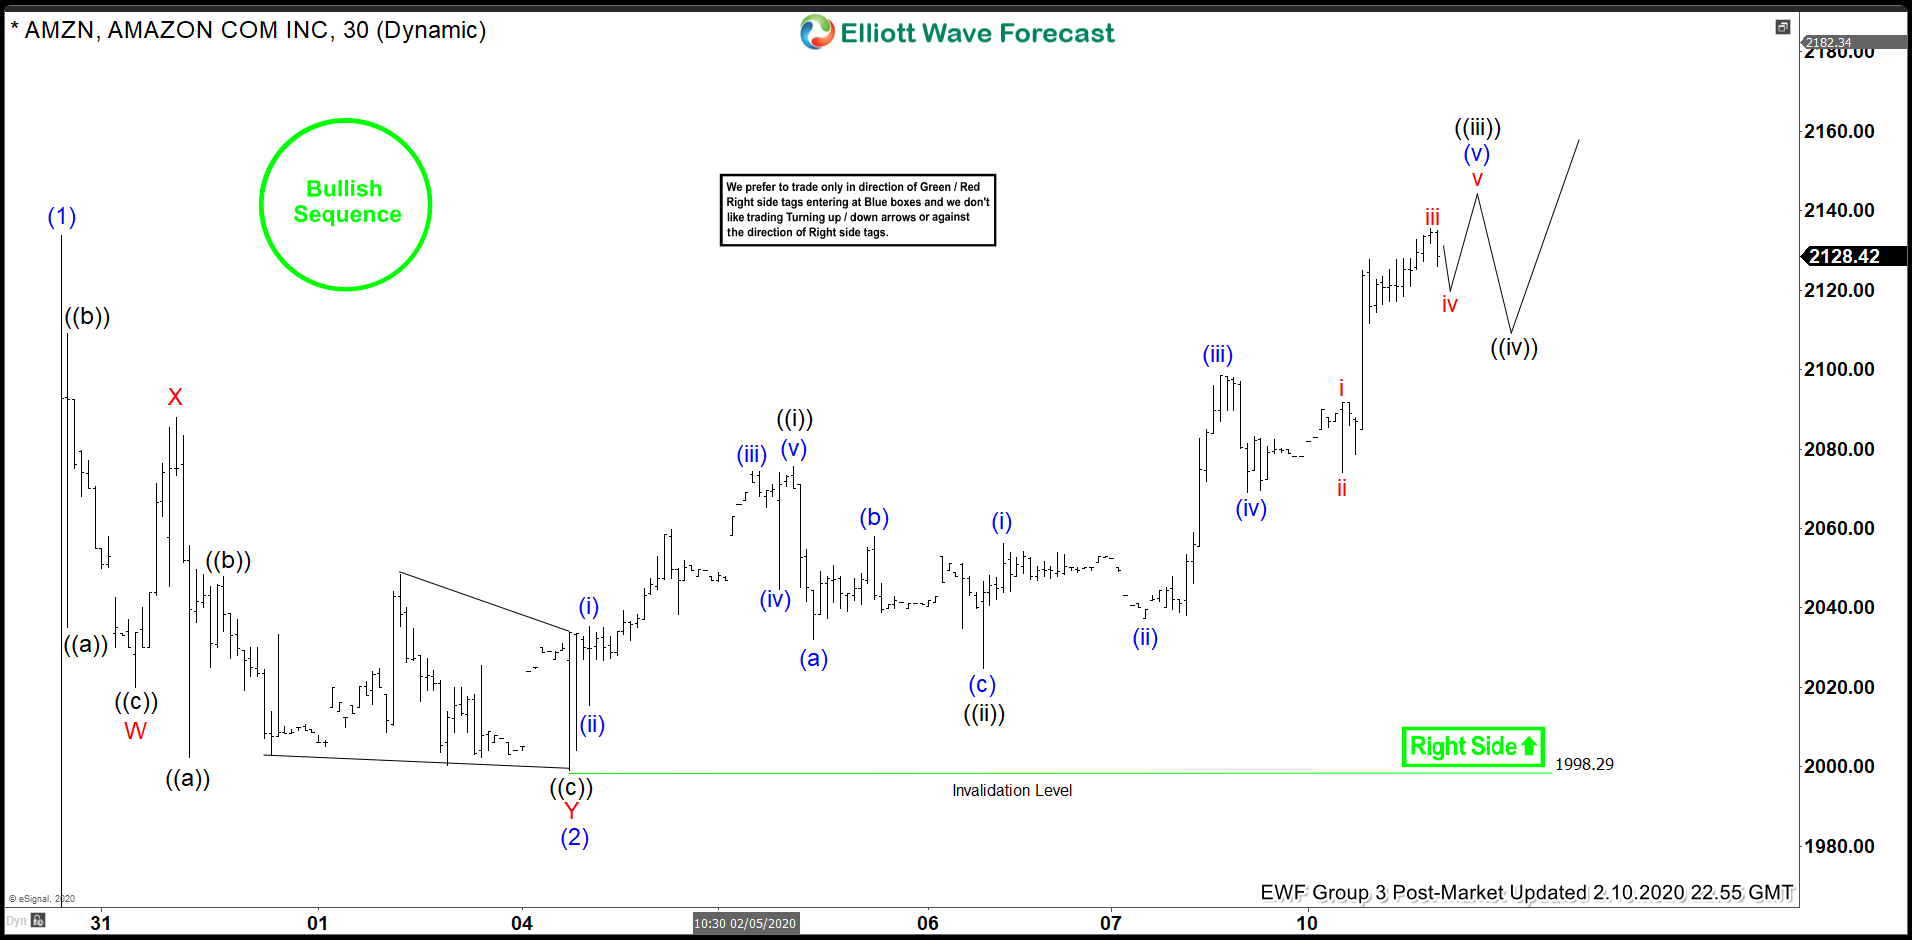 Elliott Wave View: Further Upside Expected in Amazon